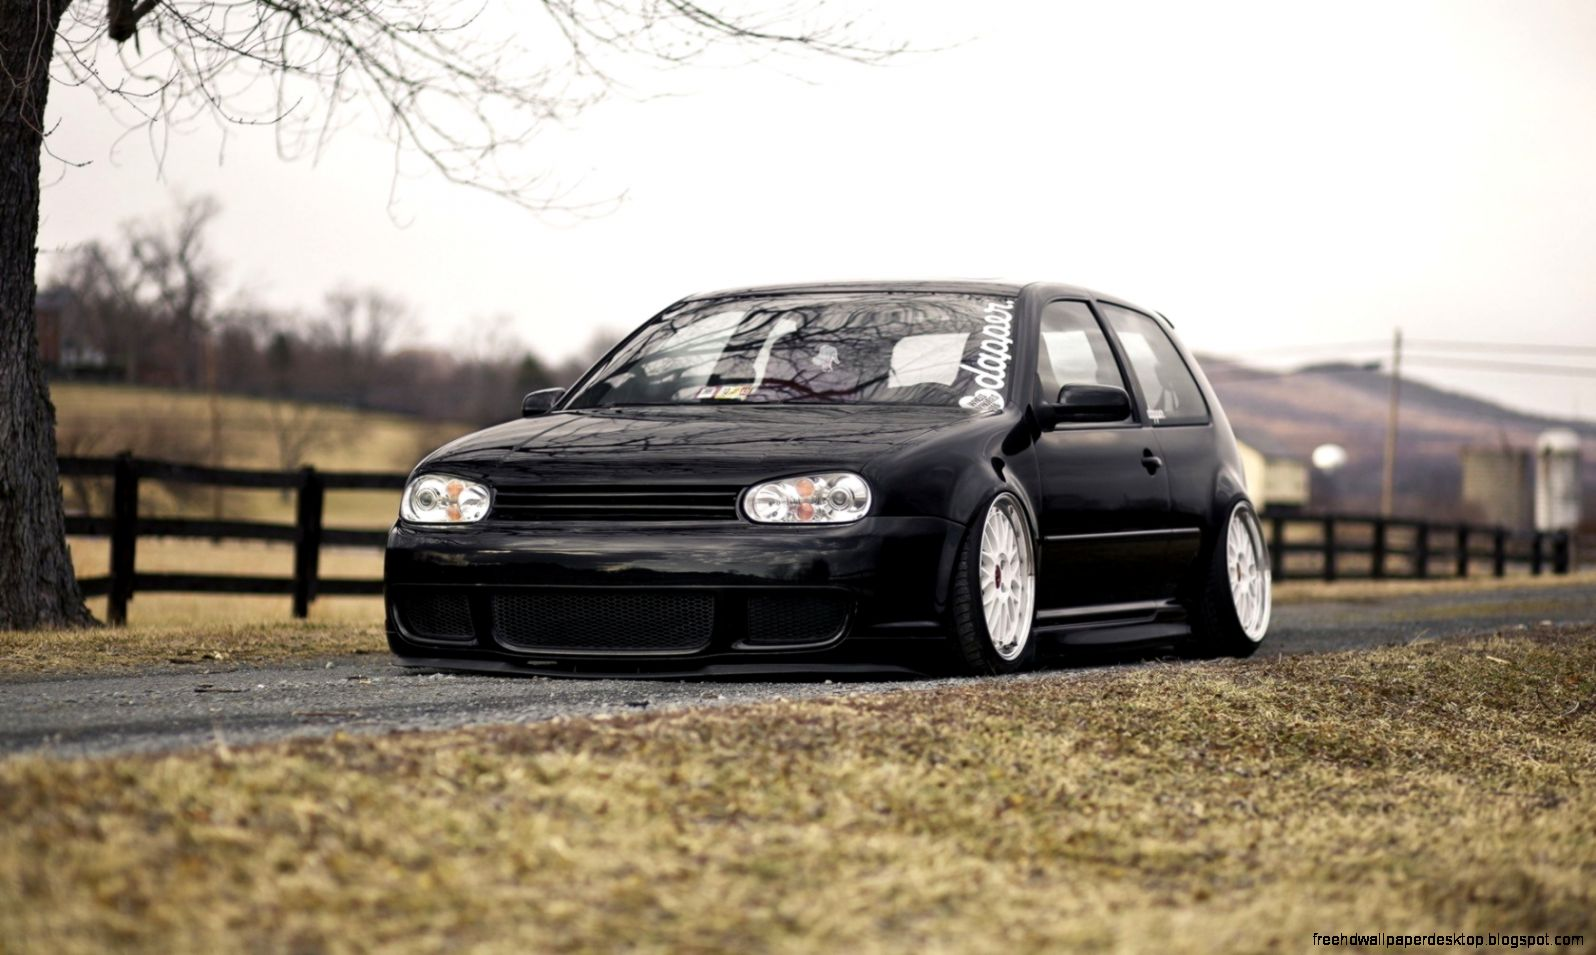 Volkswagen golf black tuning photo hd wallpaper free high definition wallpapers - Golf 4 wallpaper ...